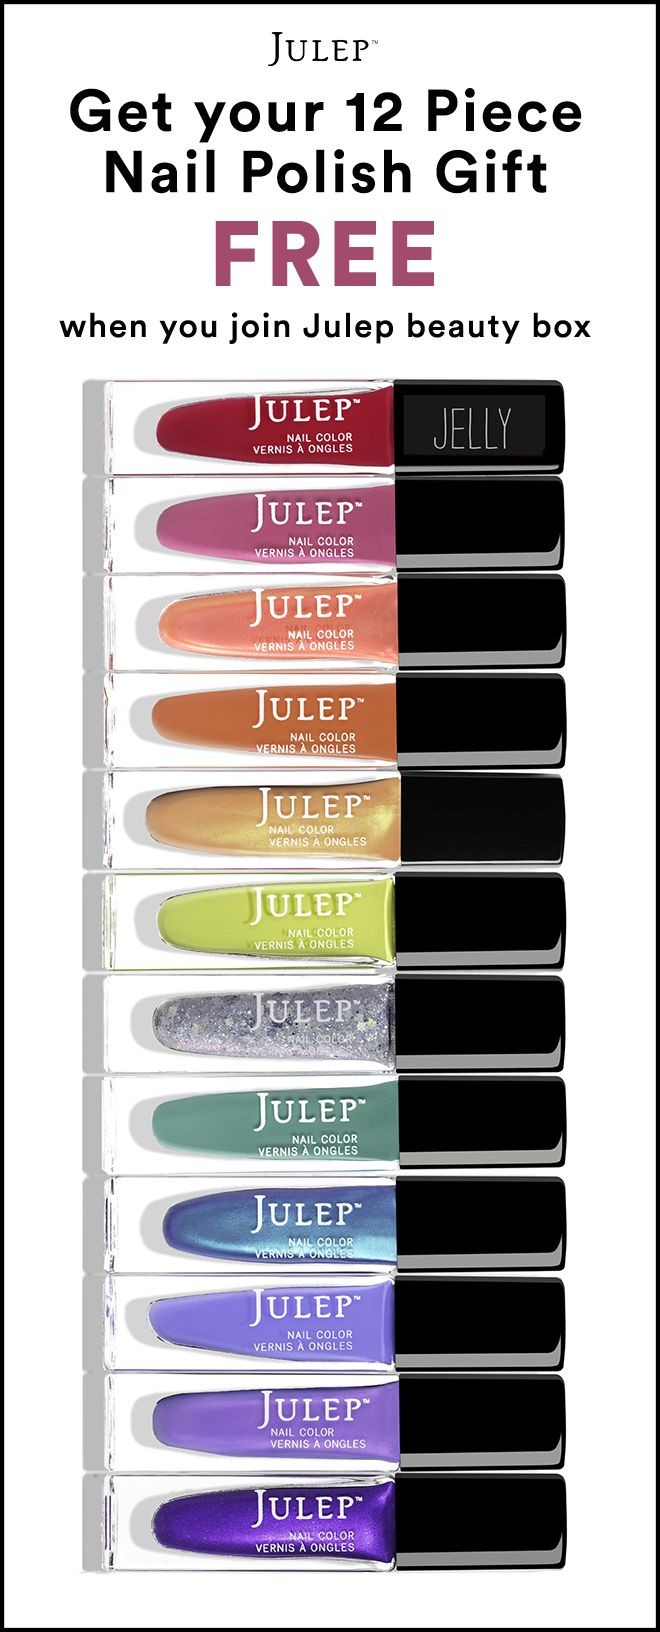 Game nail color workshop - Sign Up For The Julep Beauty Box Now And Get Our Best Selling 12